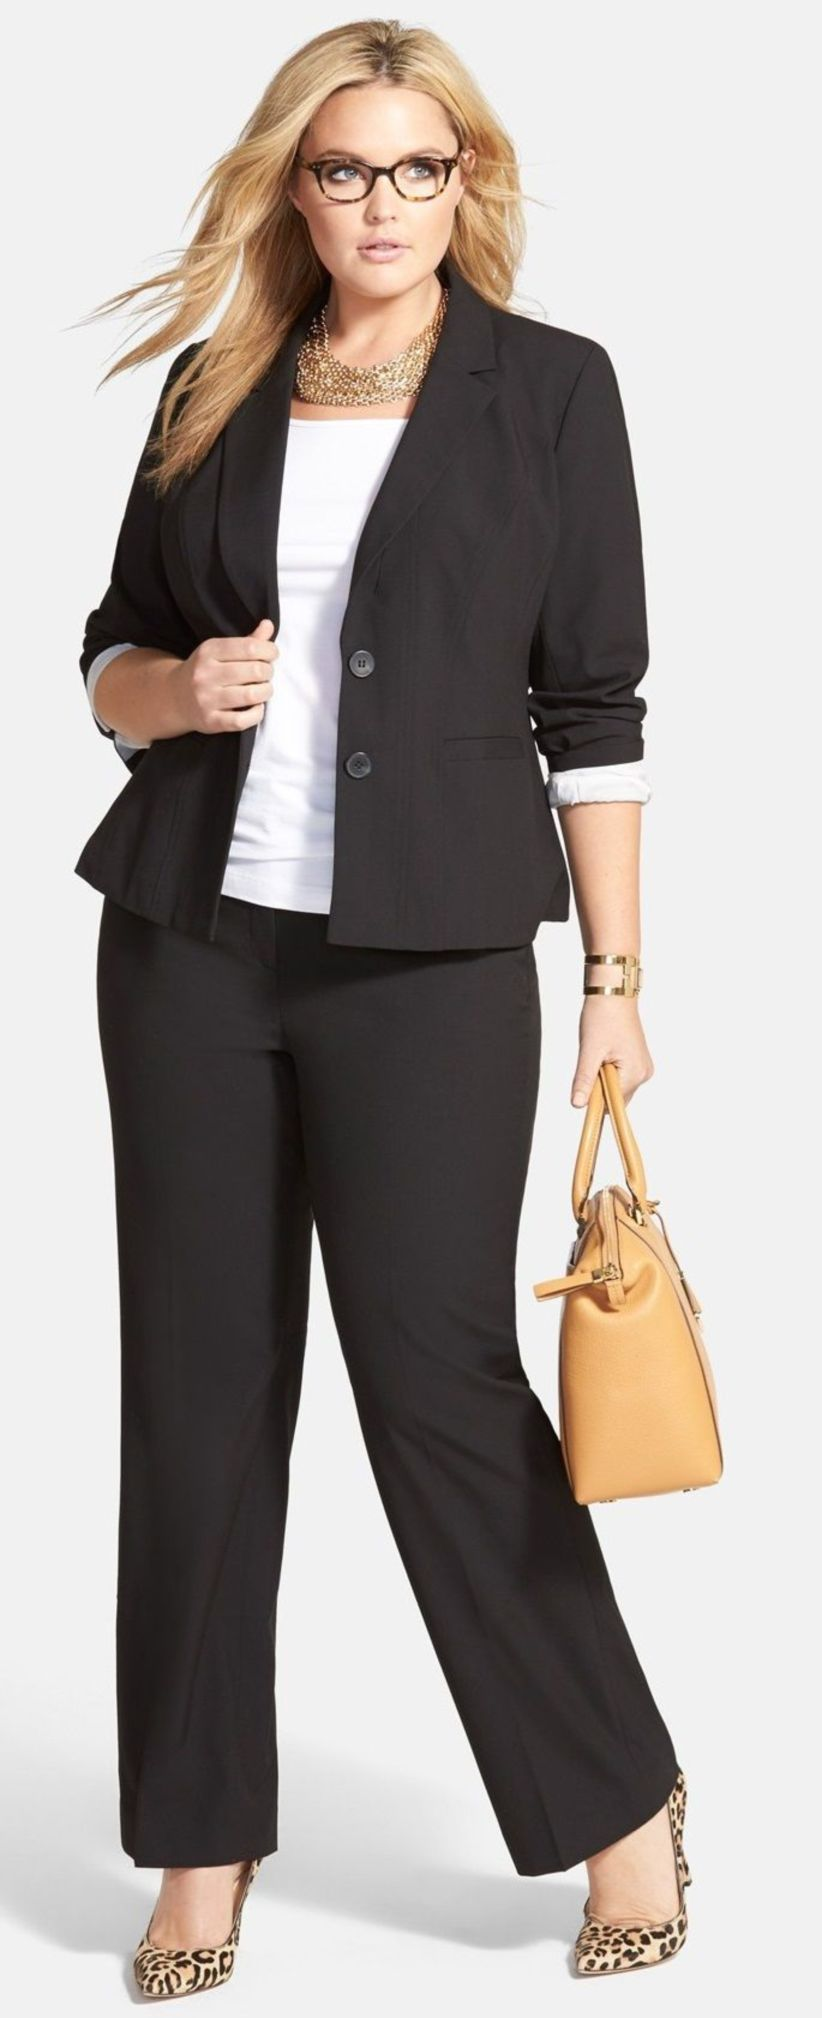 916741546c0 Awesome 33 Casual Plus Size Work Outfits for Women Over 40 http   101outfit